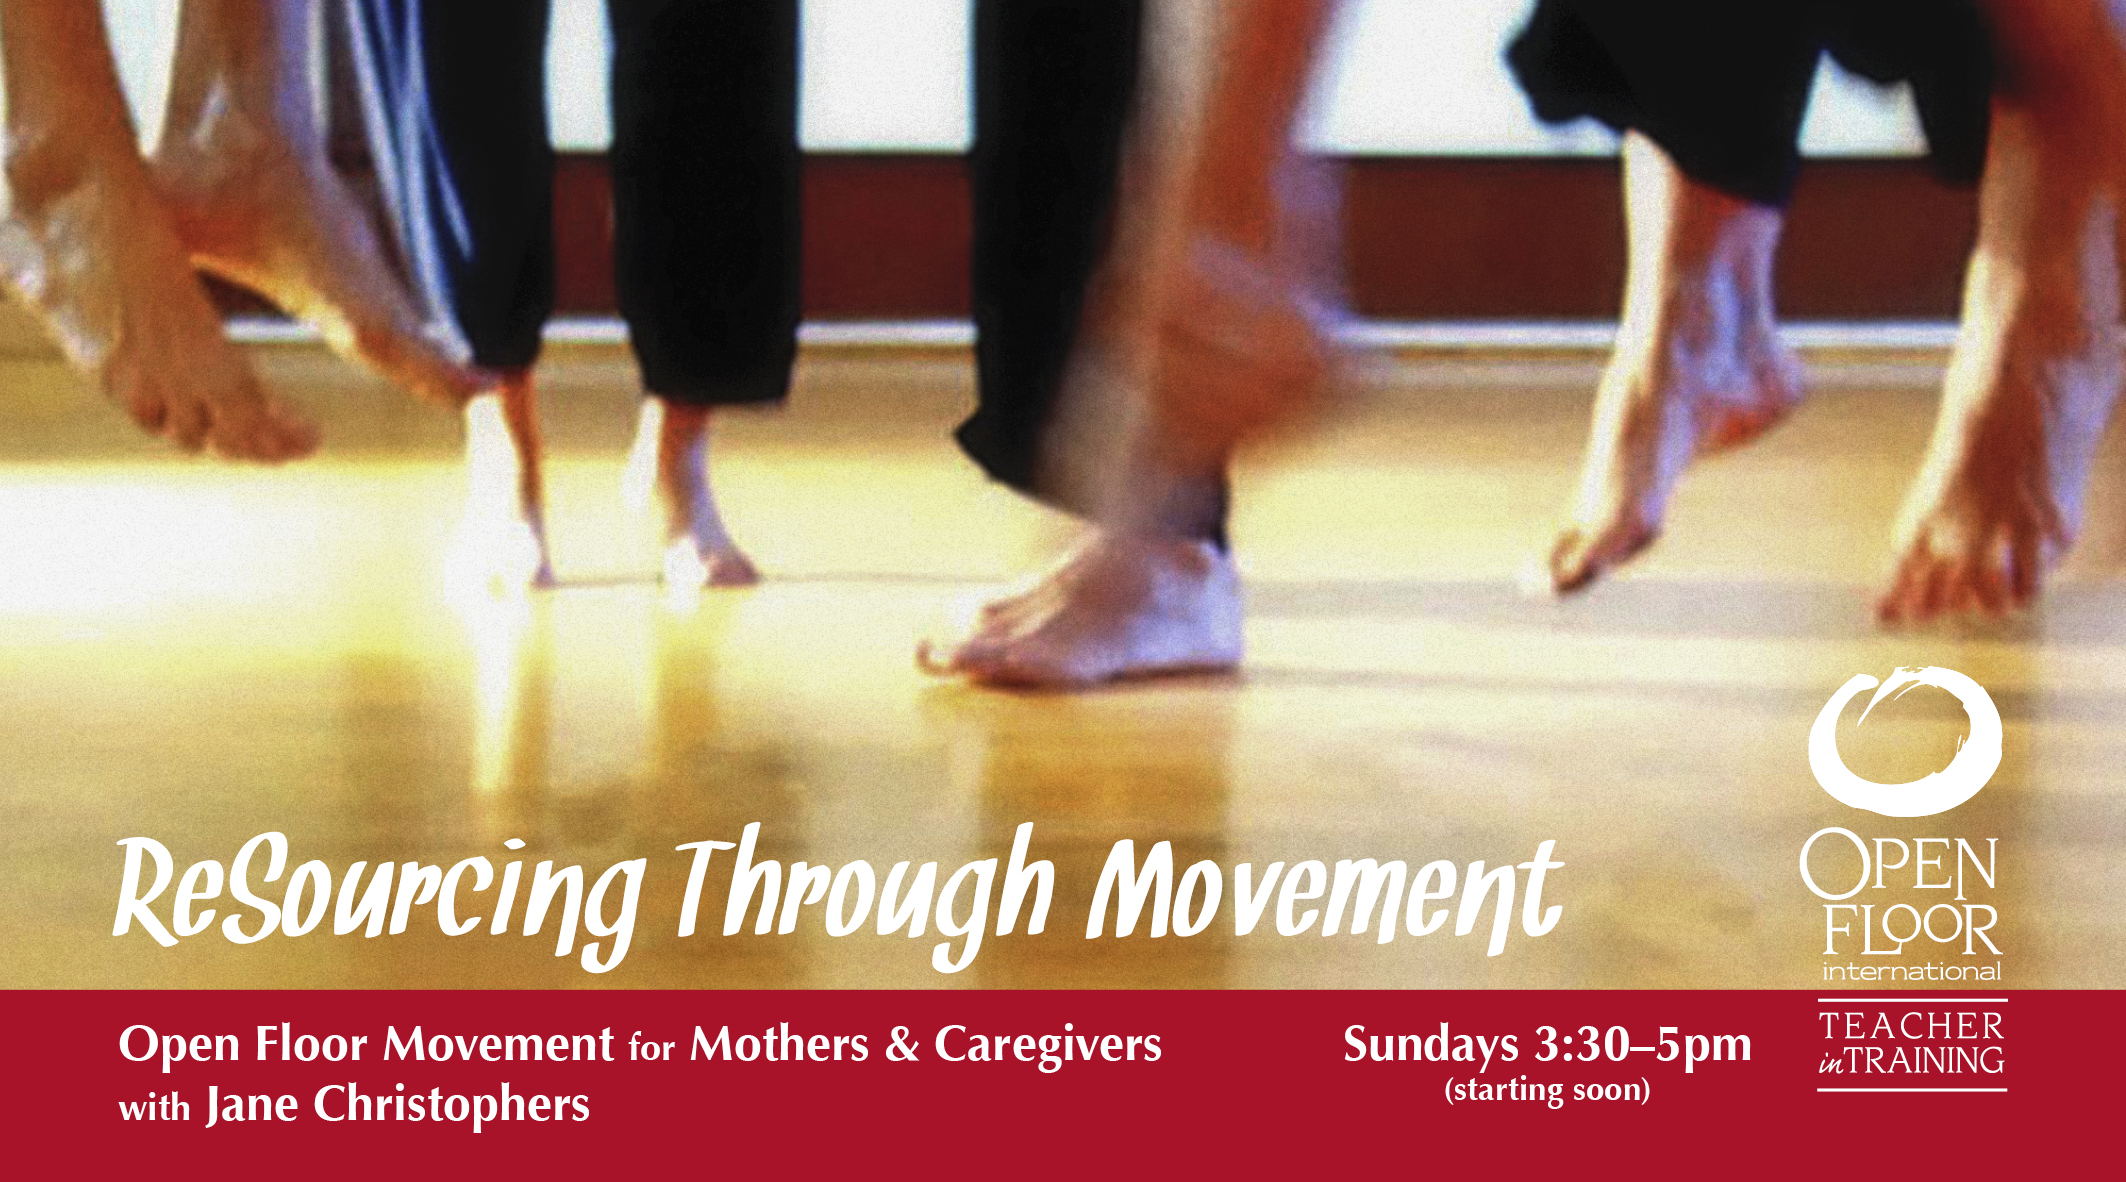 Mothers & Caregivers flyer front.jpg